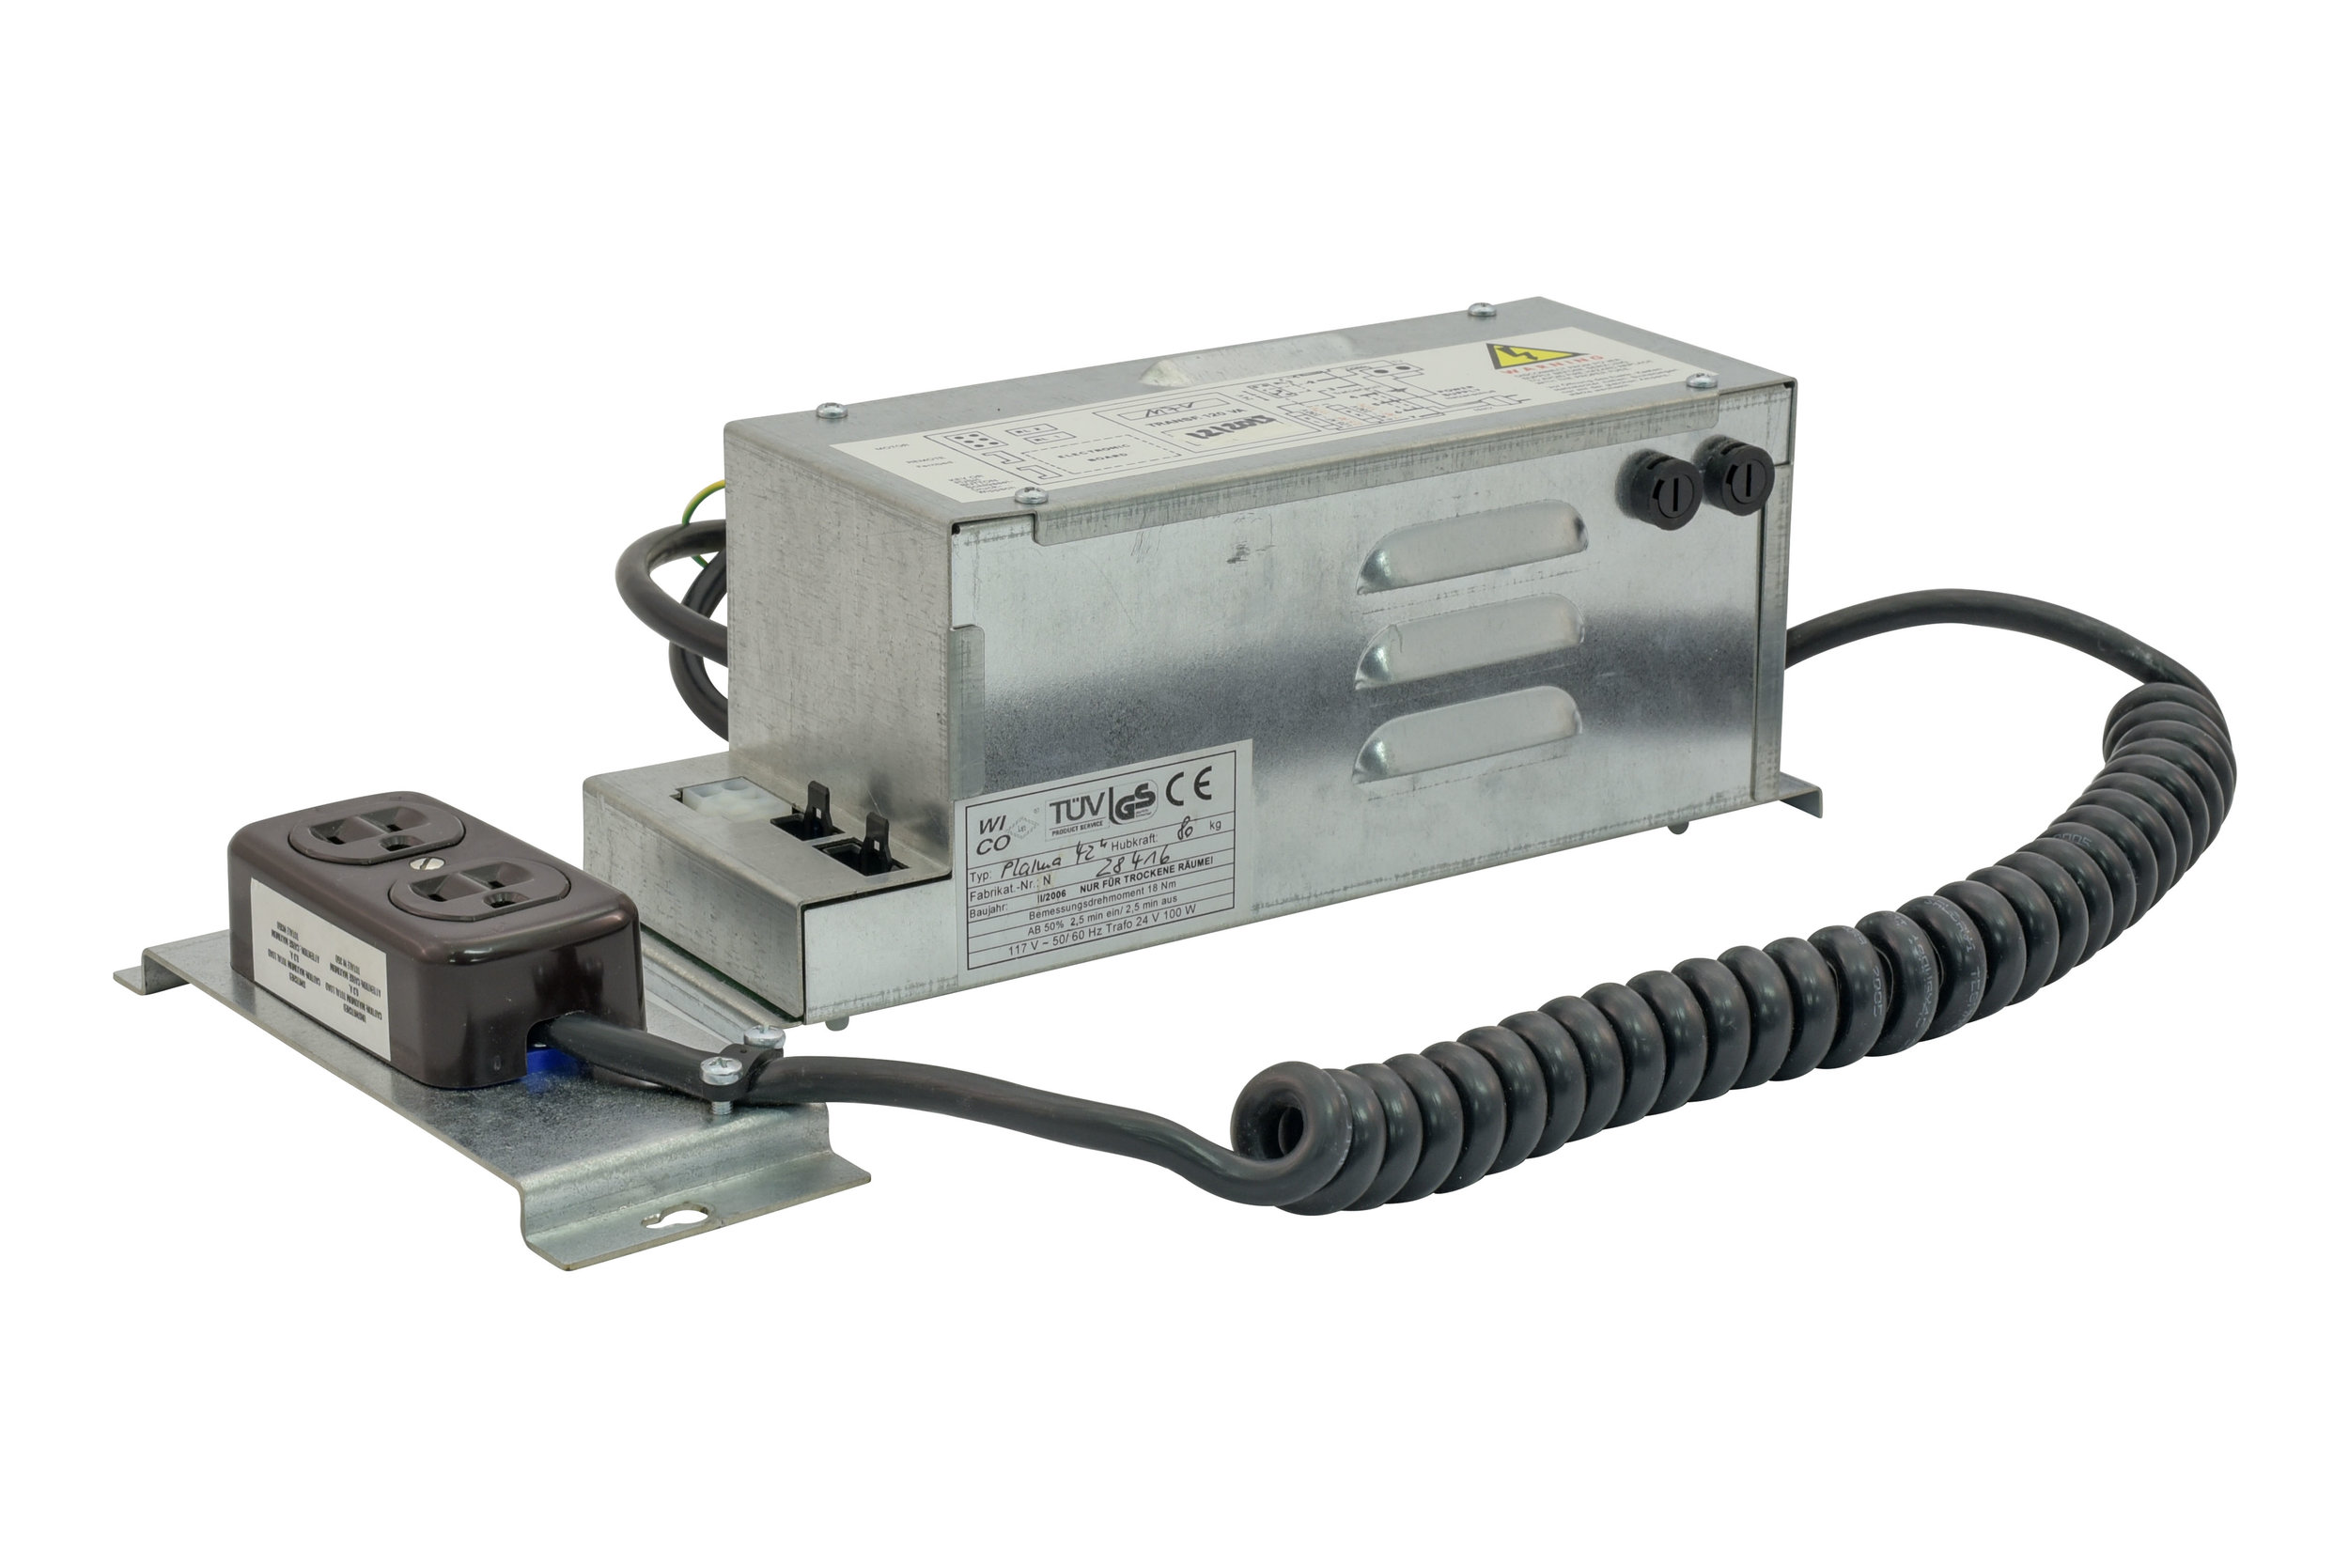 Accessories - Electronic Control Box, Remote Controls, Handles, etc.